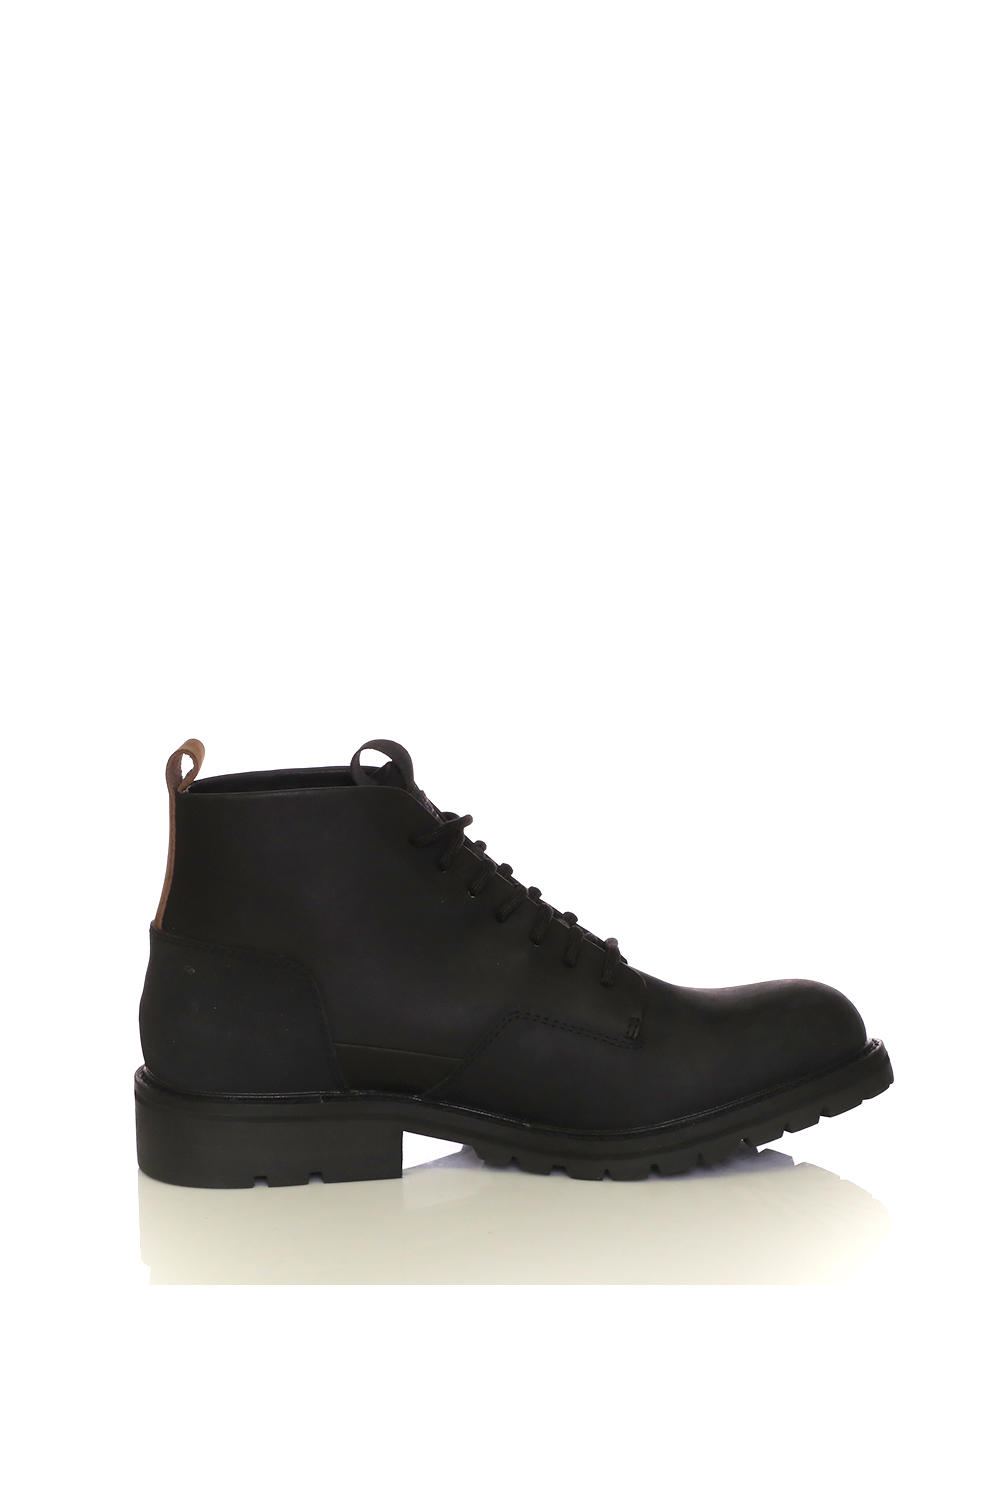 G-STAR RAW - Ανδρικά Μποτάκια CORE DERBY BOOT II Μαύρα